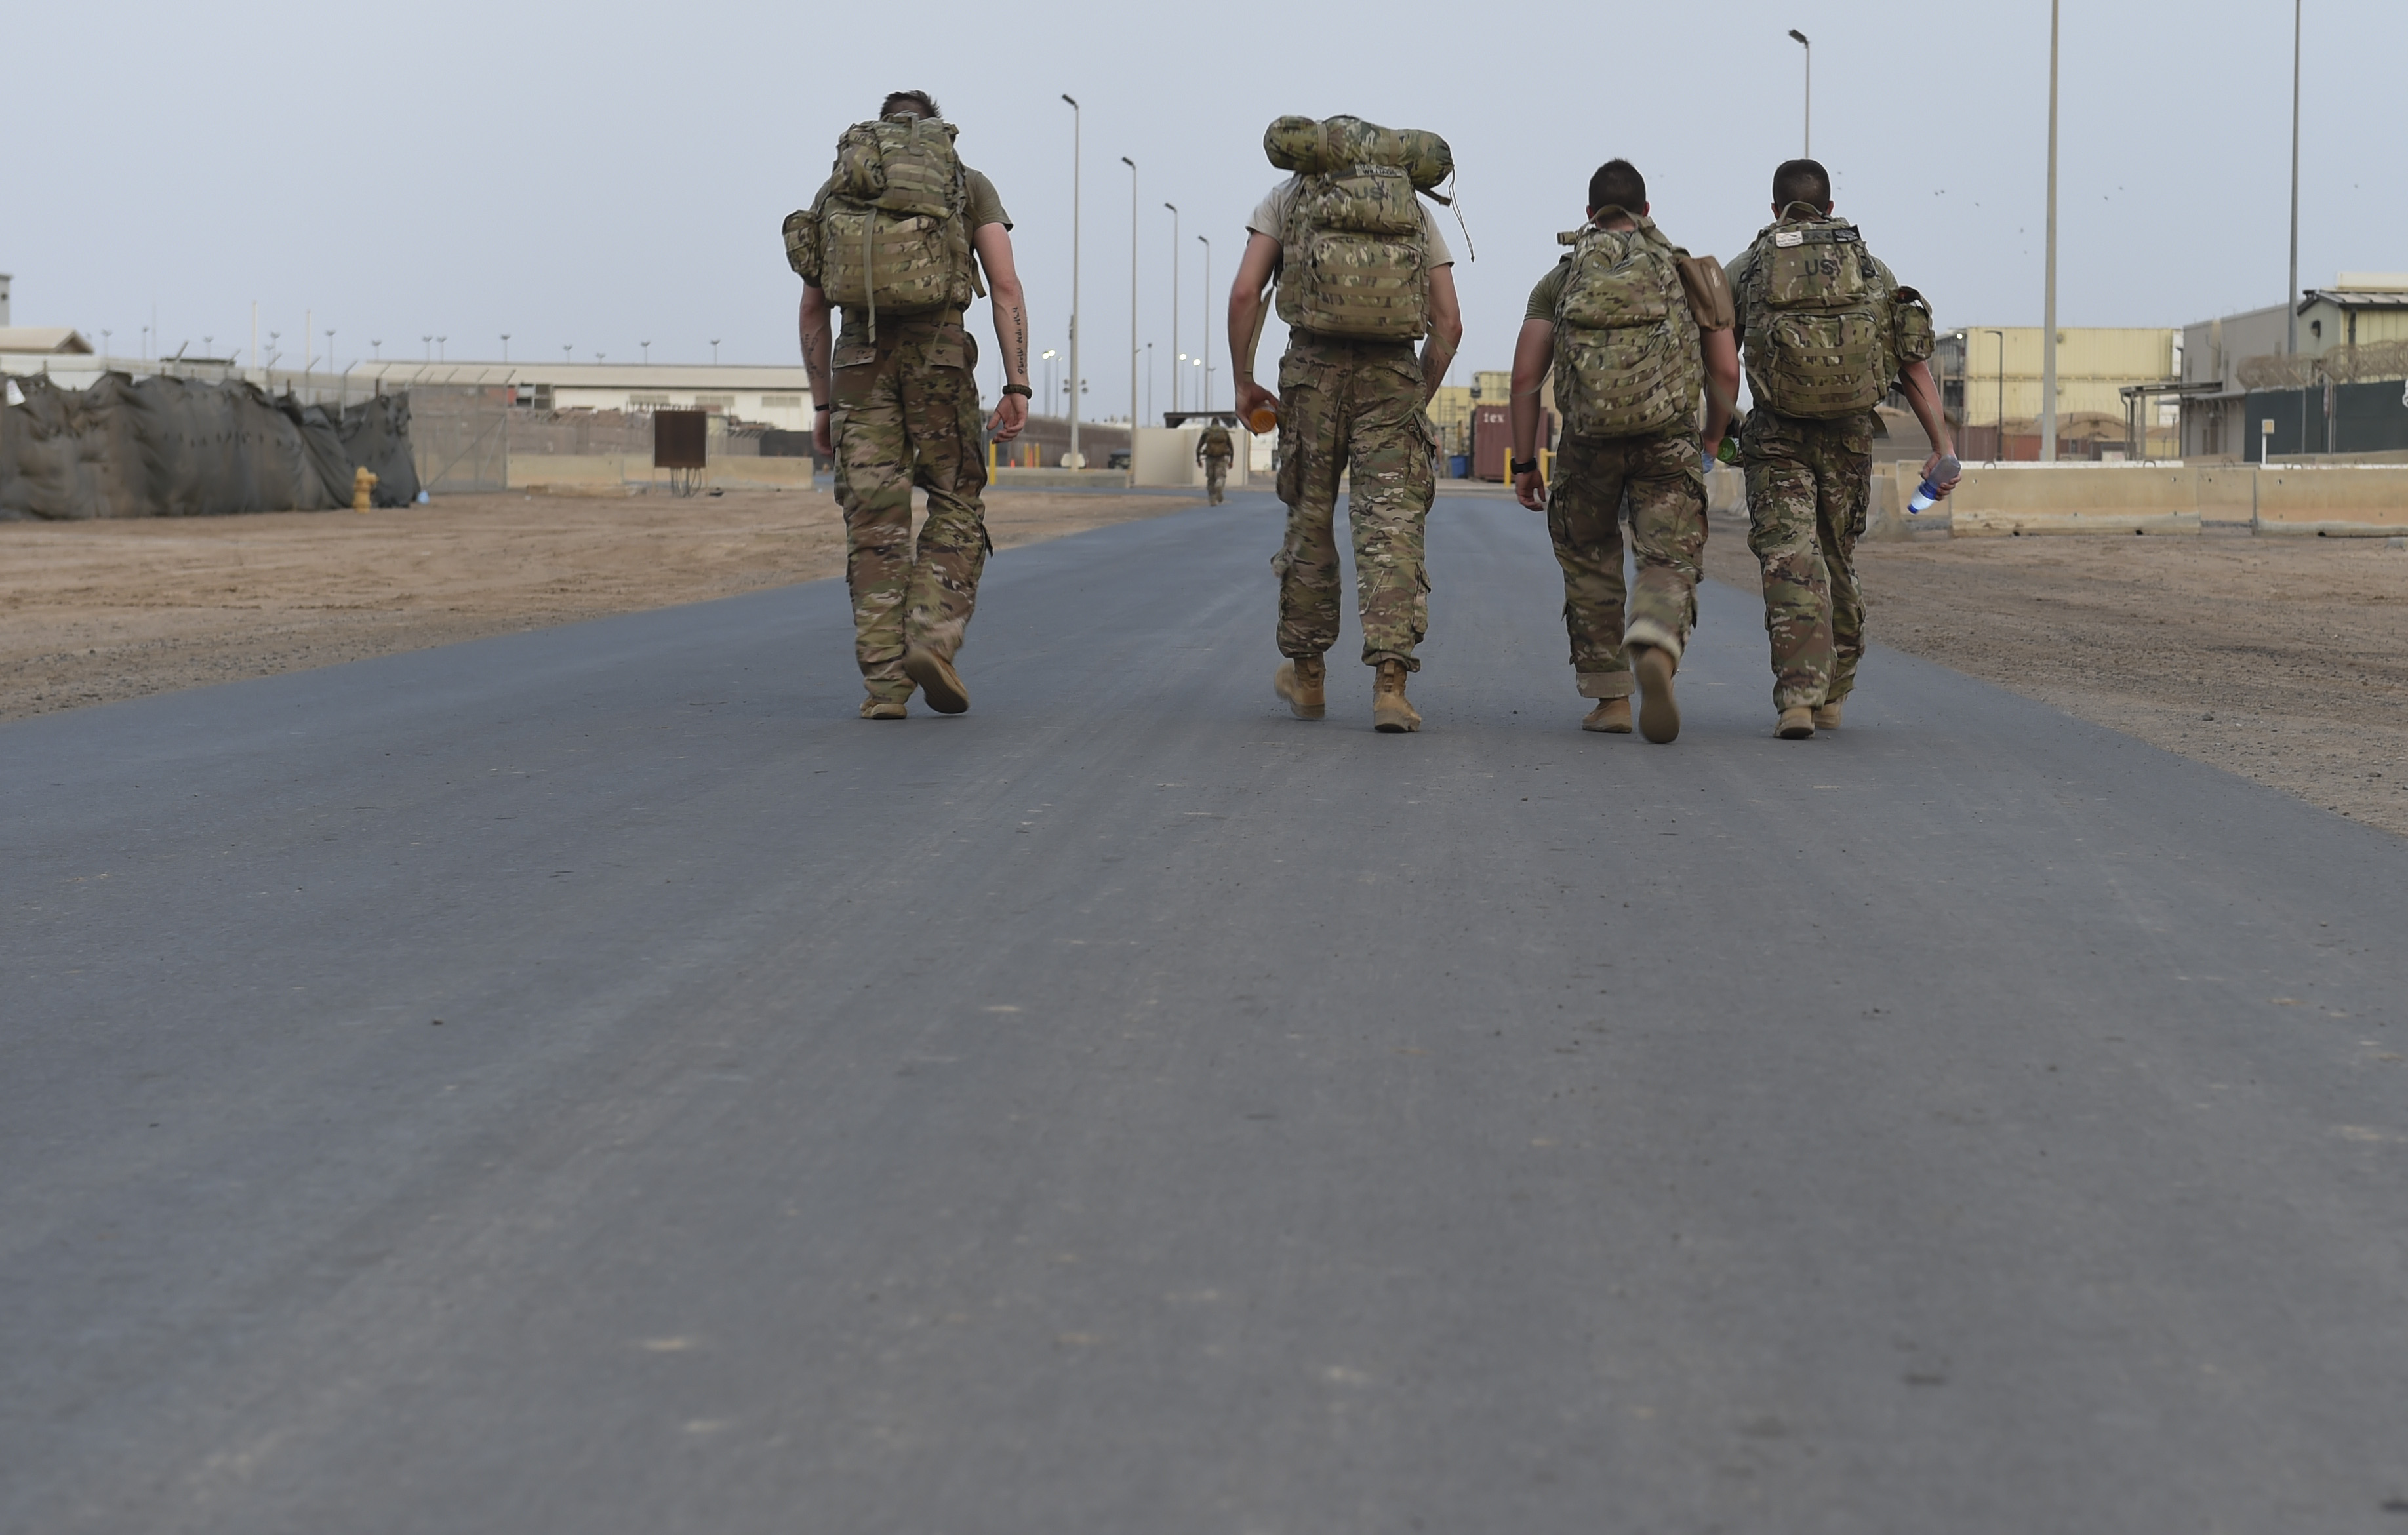 U.S. military members participate in a ruck march during a physical training test at Camp Lemonnier, Djibouti, Aug. 5, 2017. The test was in preparation for an upcoming multi-day French Desert Commando Course that will challenge participants physically and mentally through land and water obstacles, combat scenarios and extreme endurance exercises while surviving in austere field conditions. (U.S. Air Force photo by Staff Sgt. Eboni Prince)